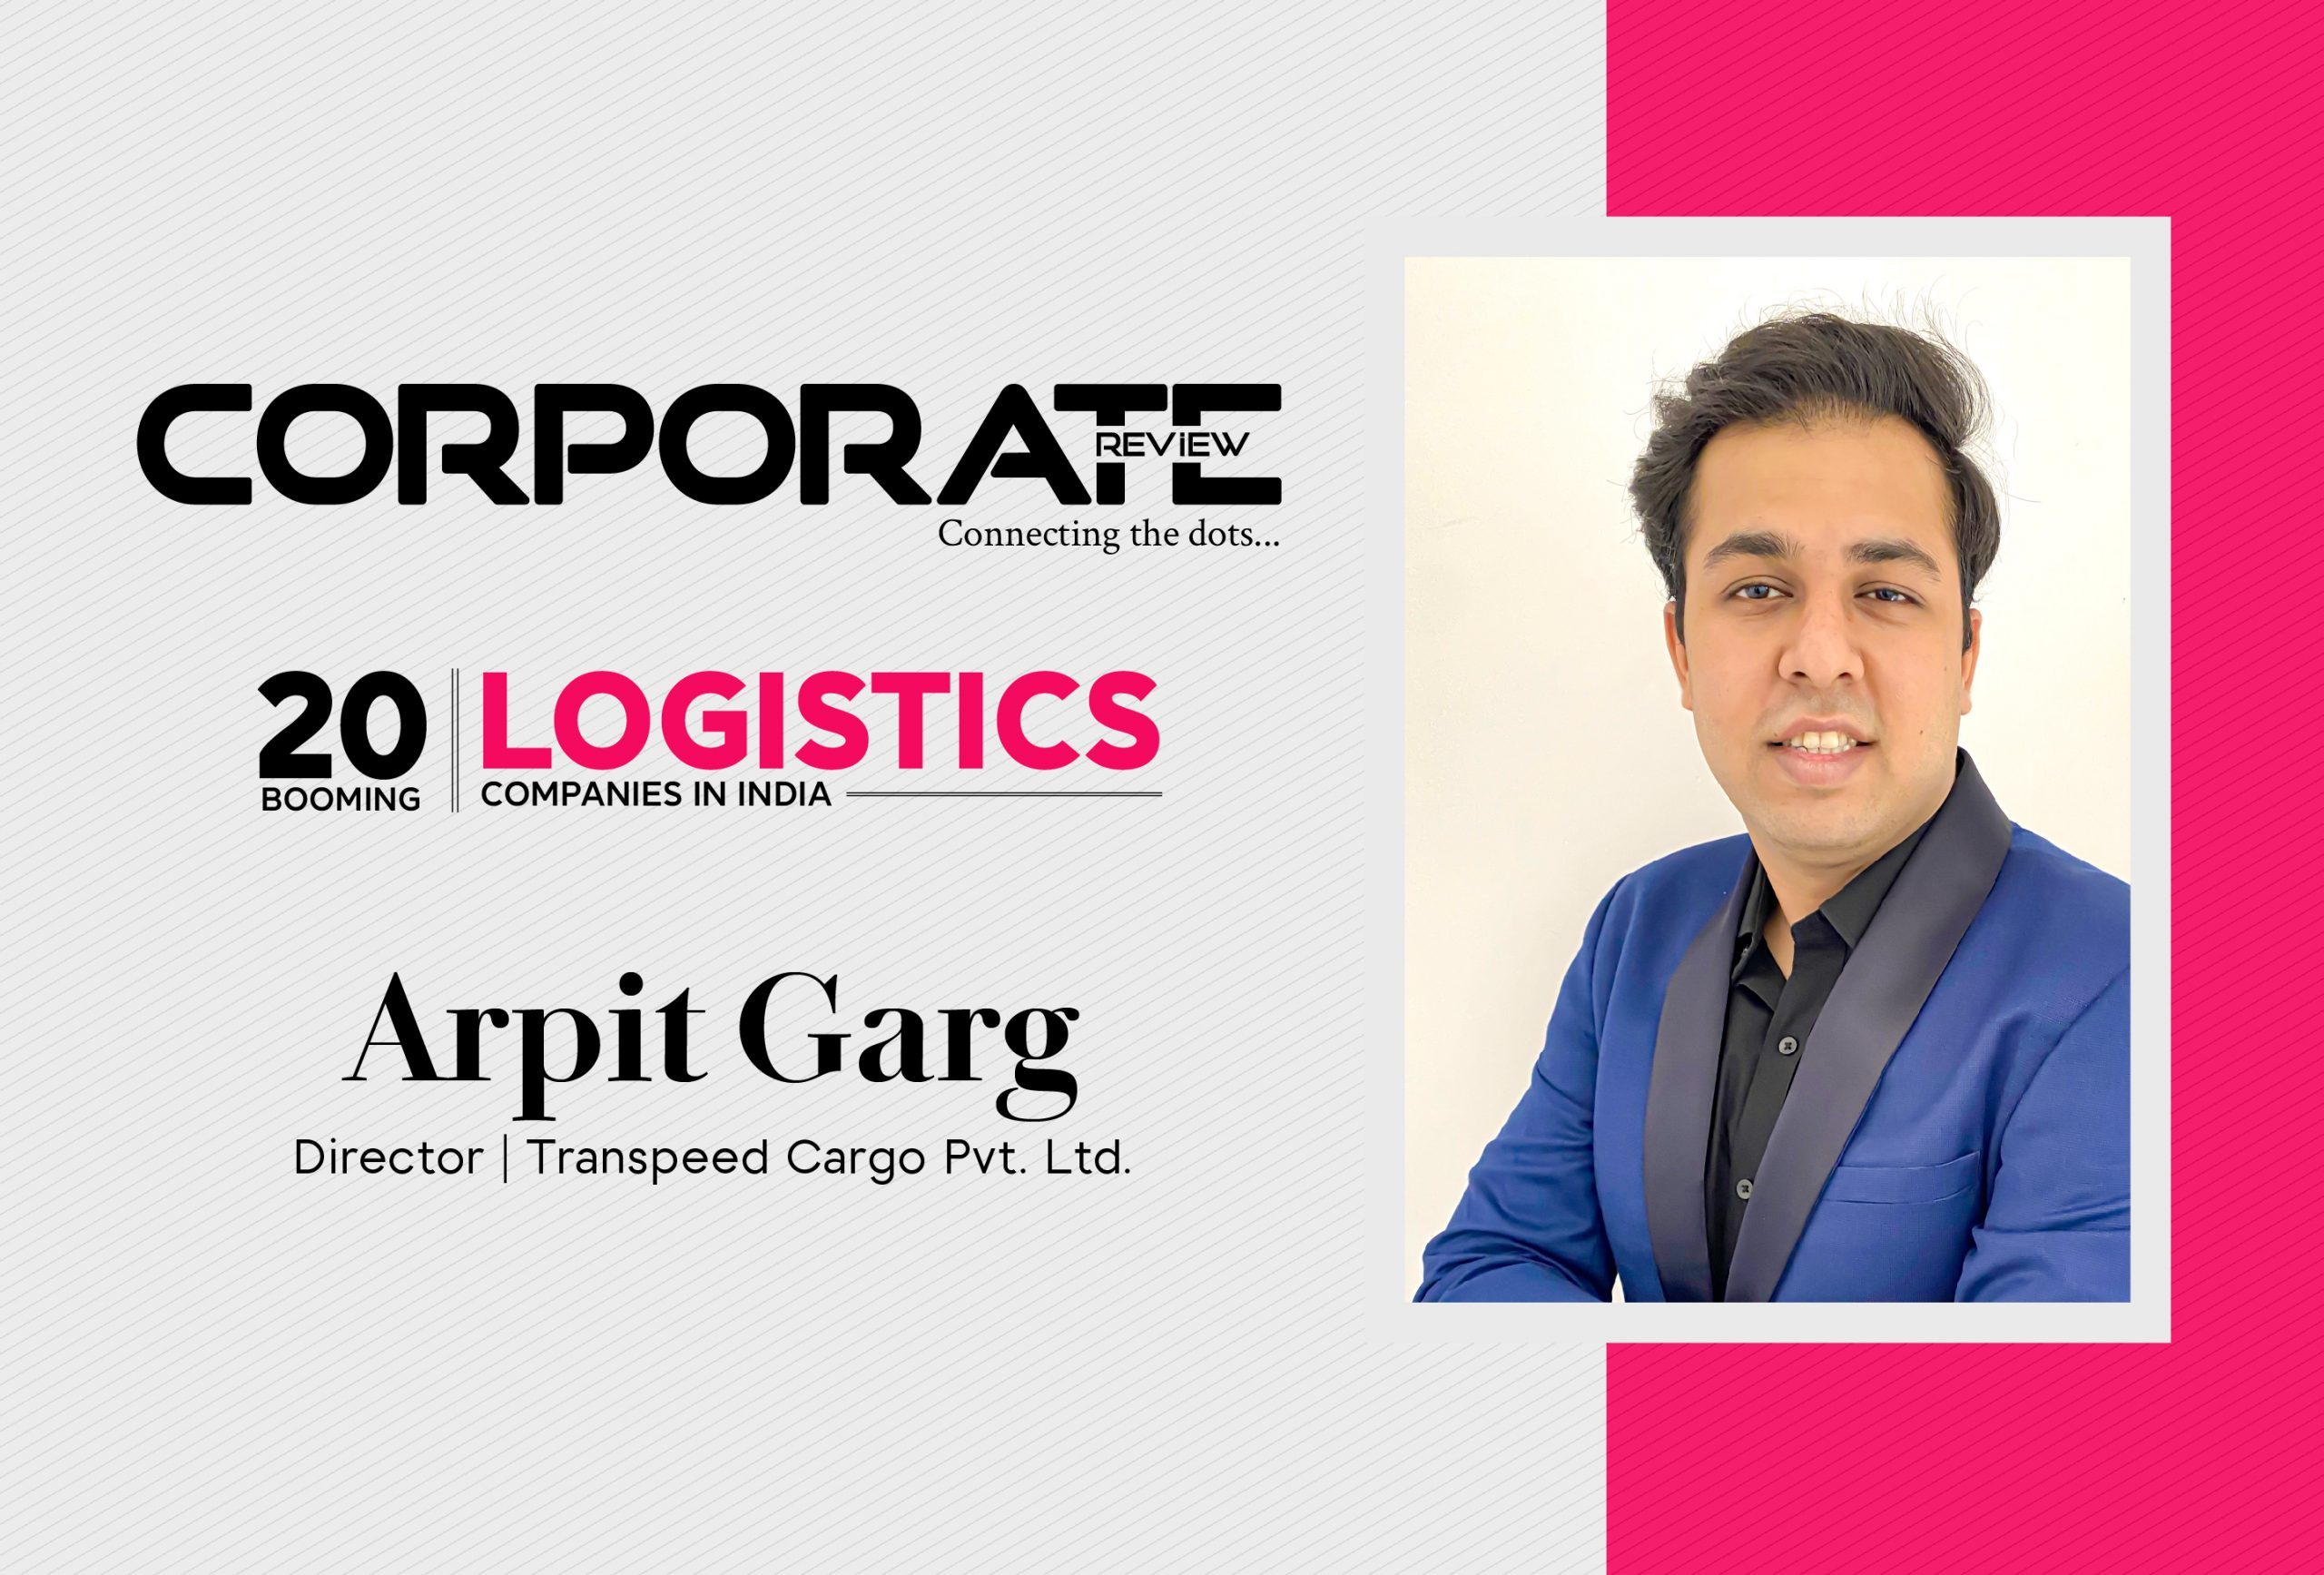 Transpeed Cargo Pvt. Ltd.: Taking charge of the freight forwarding industry with its technology-driven expertise